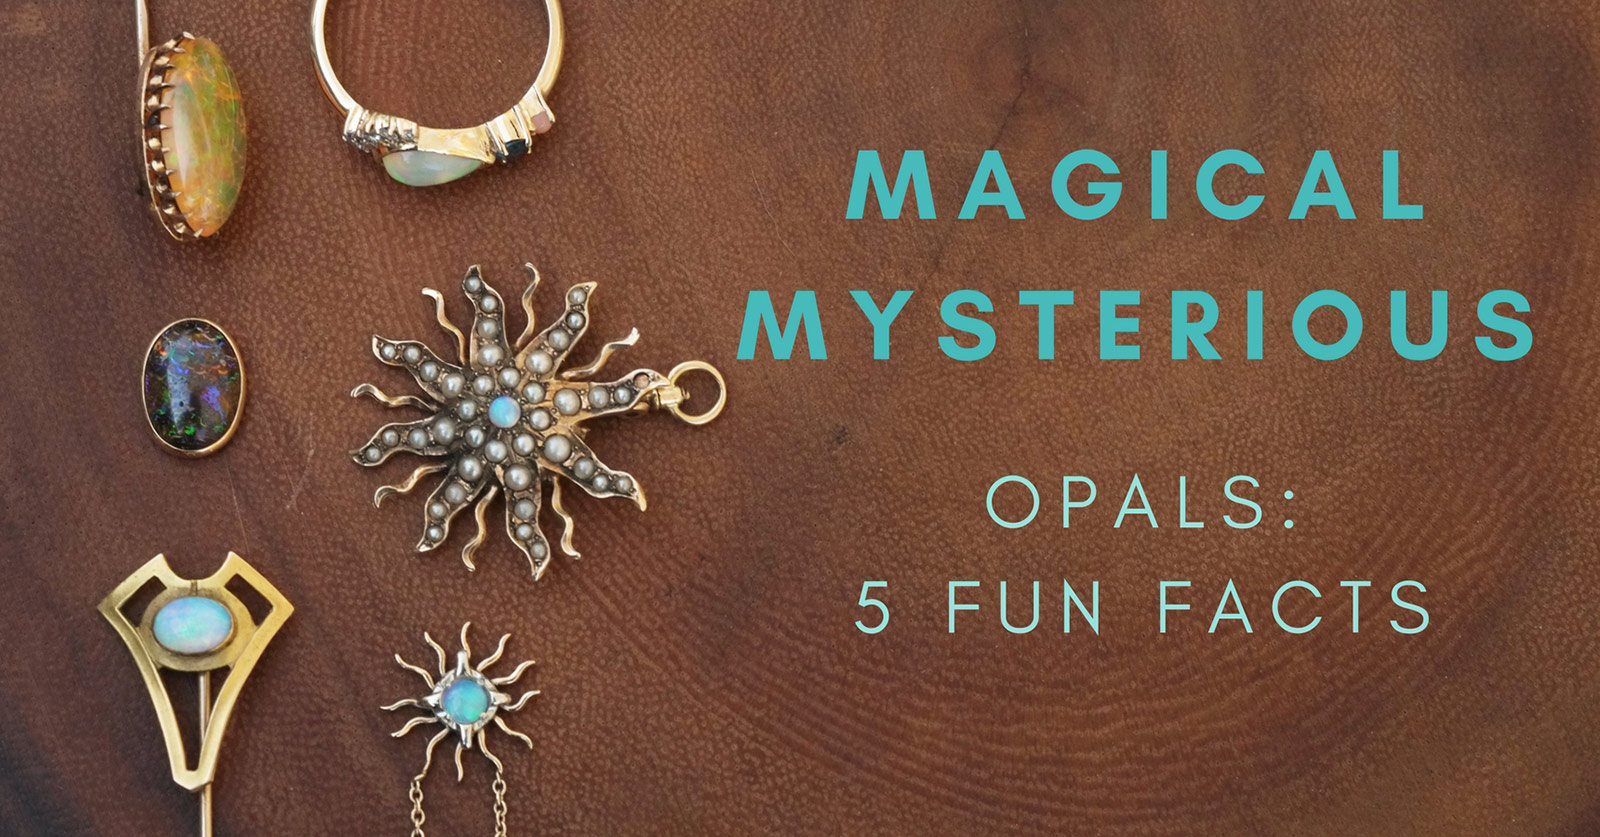 Opals: Fun facts About a Super-Popular Gemstone